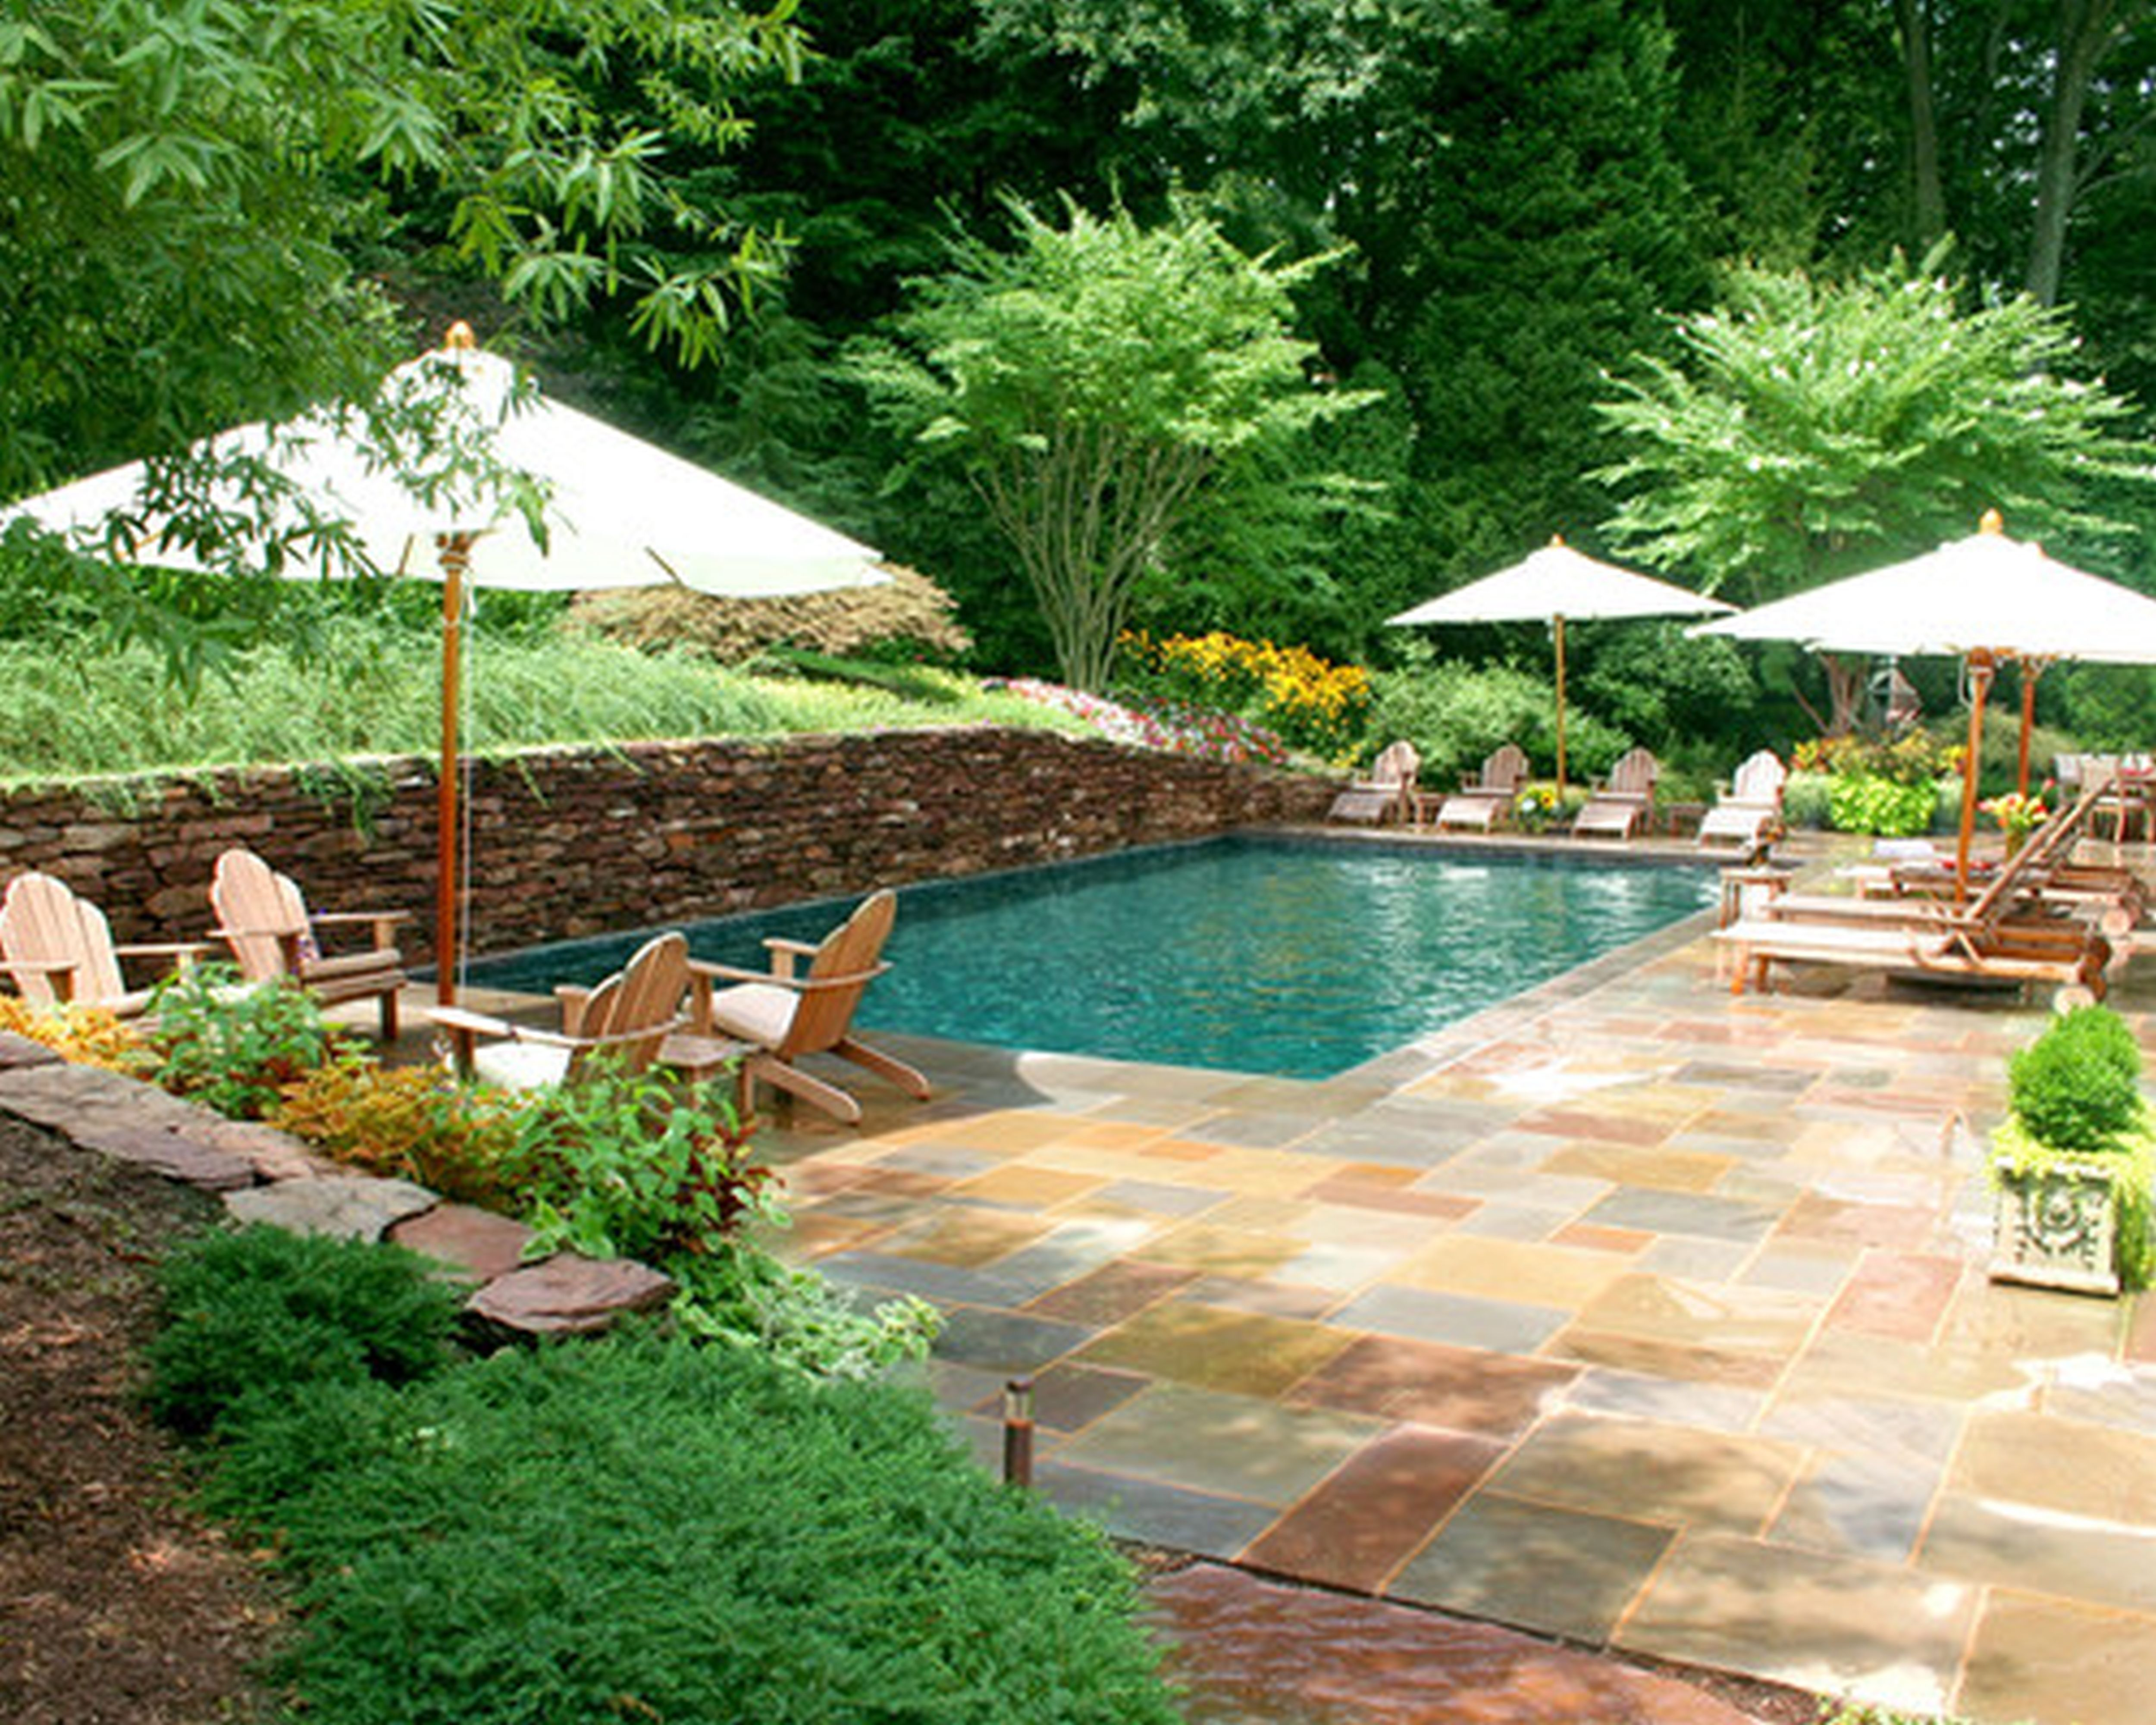 Designing your backyard swimming pool part i of ii Cheap pool landscaping ideas